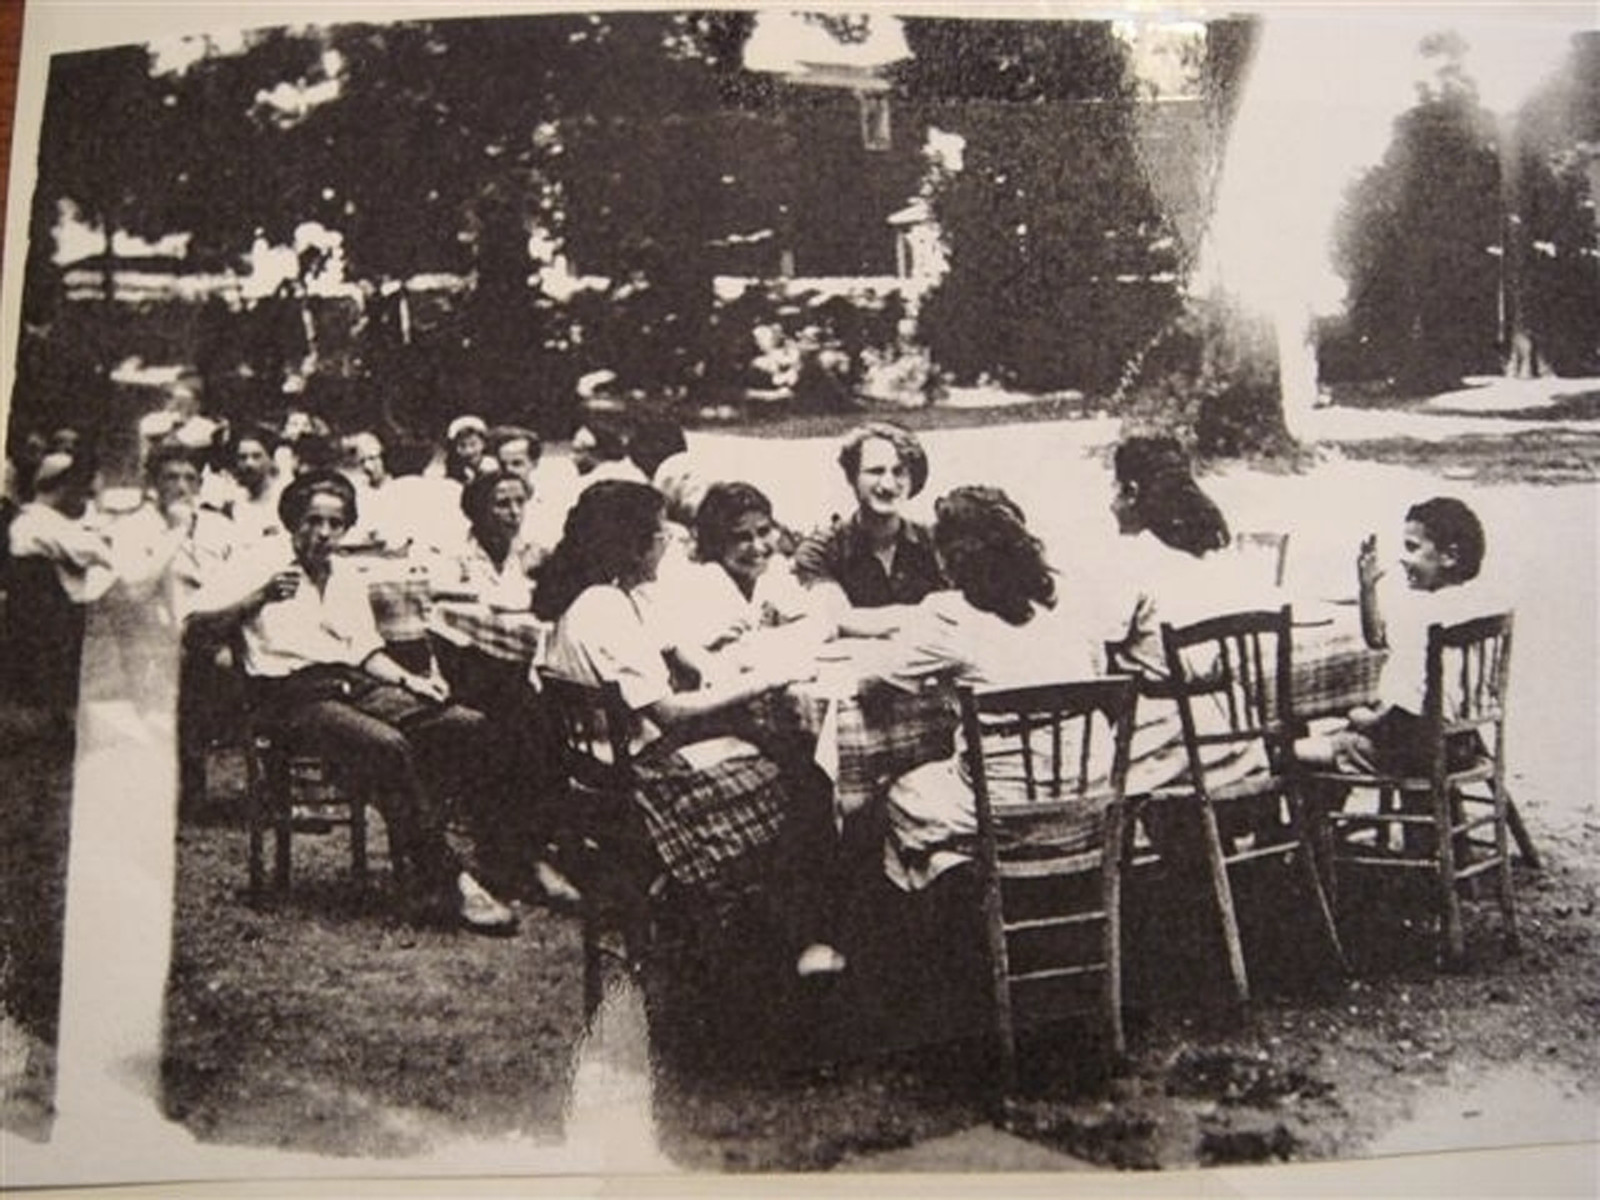 Teenagers from the Versailles children's home sit outside around tables.  Among those pictured is Mathilde (Tilly) Goldschmidt.